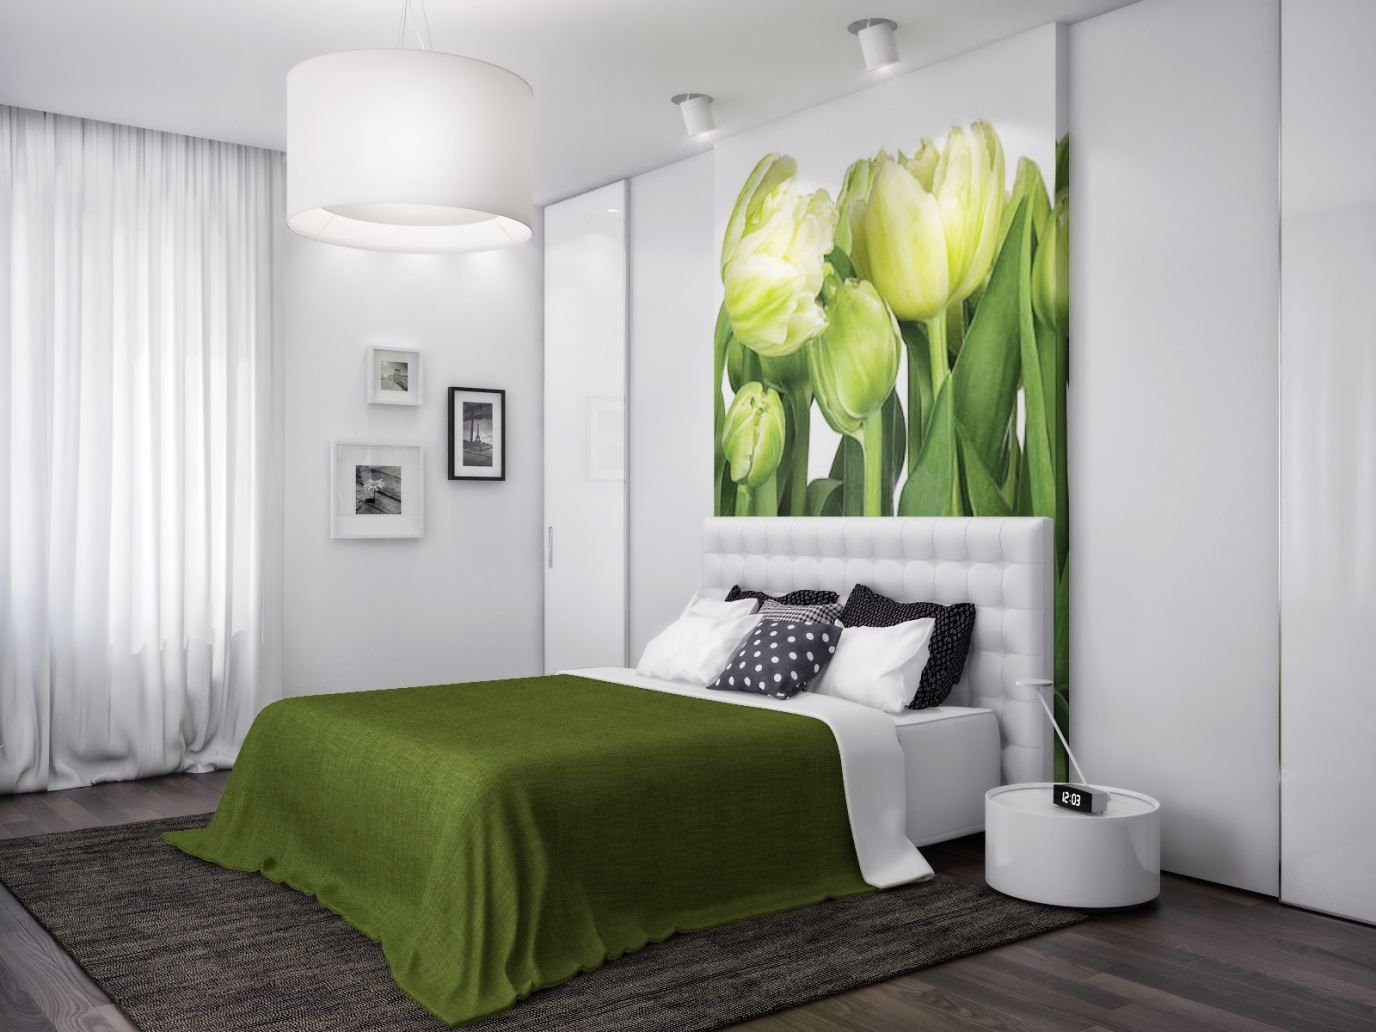 8 Grey And Green Bedroom Design Ideas Nice Grey And Green Bedroom Design Ideas 2 Green White N Green And White Bedroom Bedroom Green Green Bedroom Design